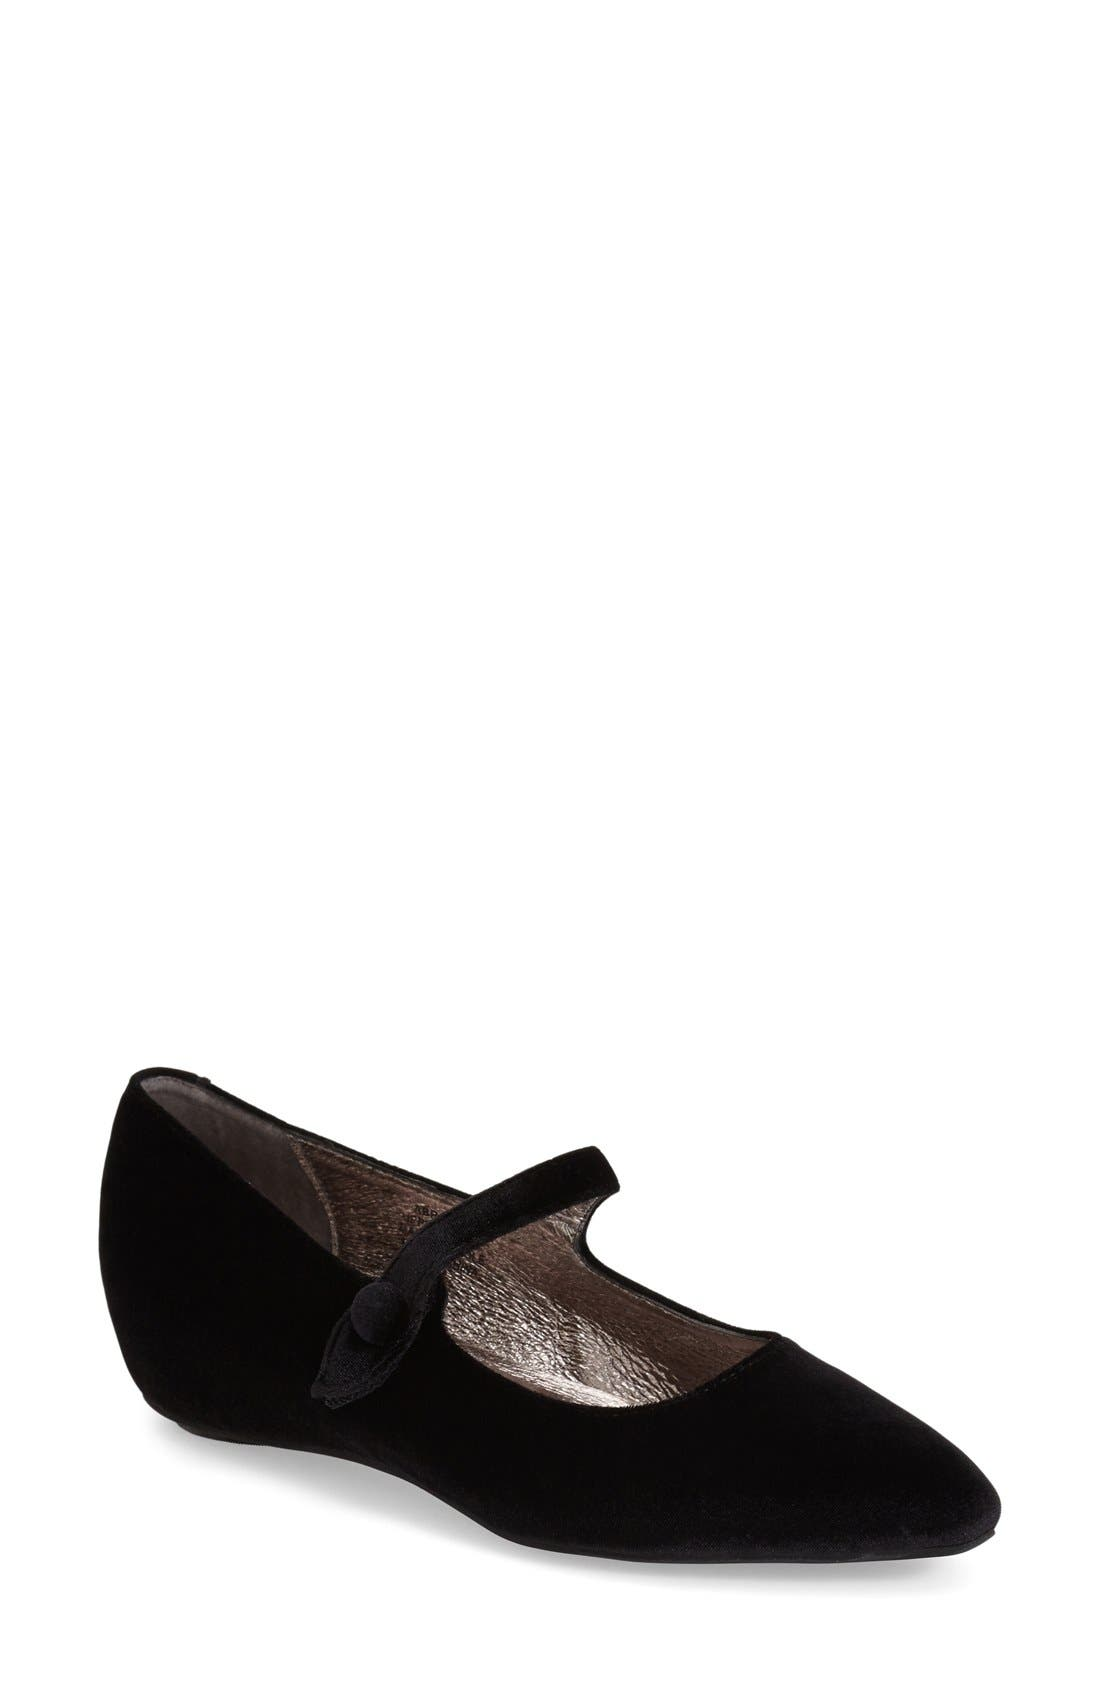 Alternate Image 1 Selected - Jeffrey Campbell 'Abrielle' Pointy Toe Mary Jane Flat (Women)